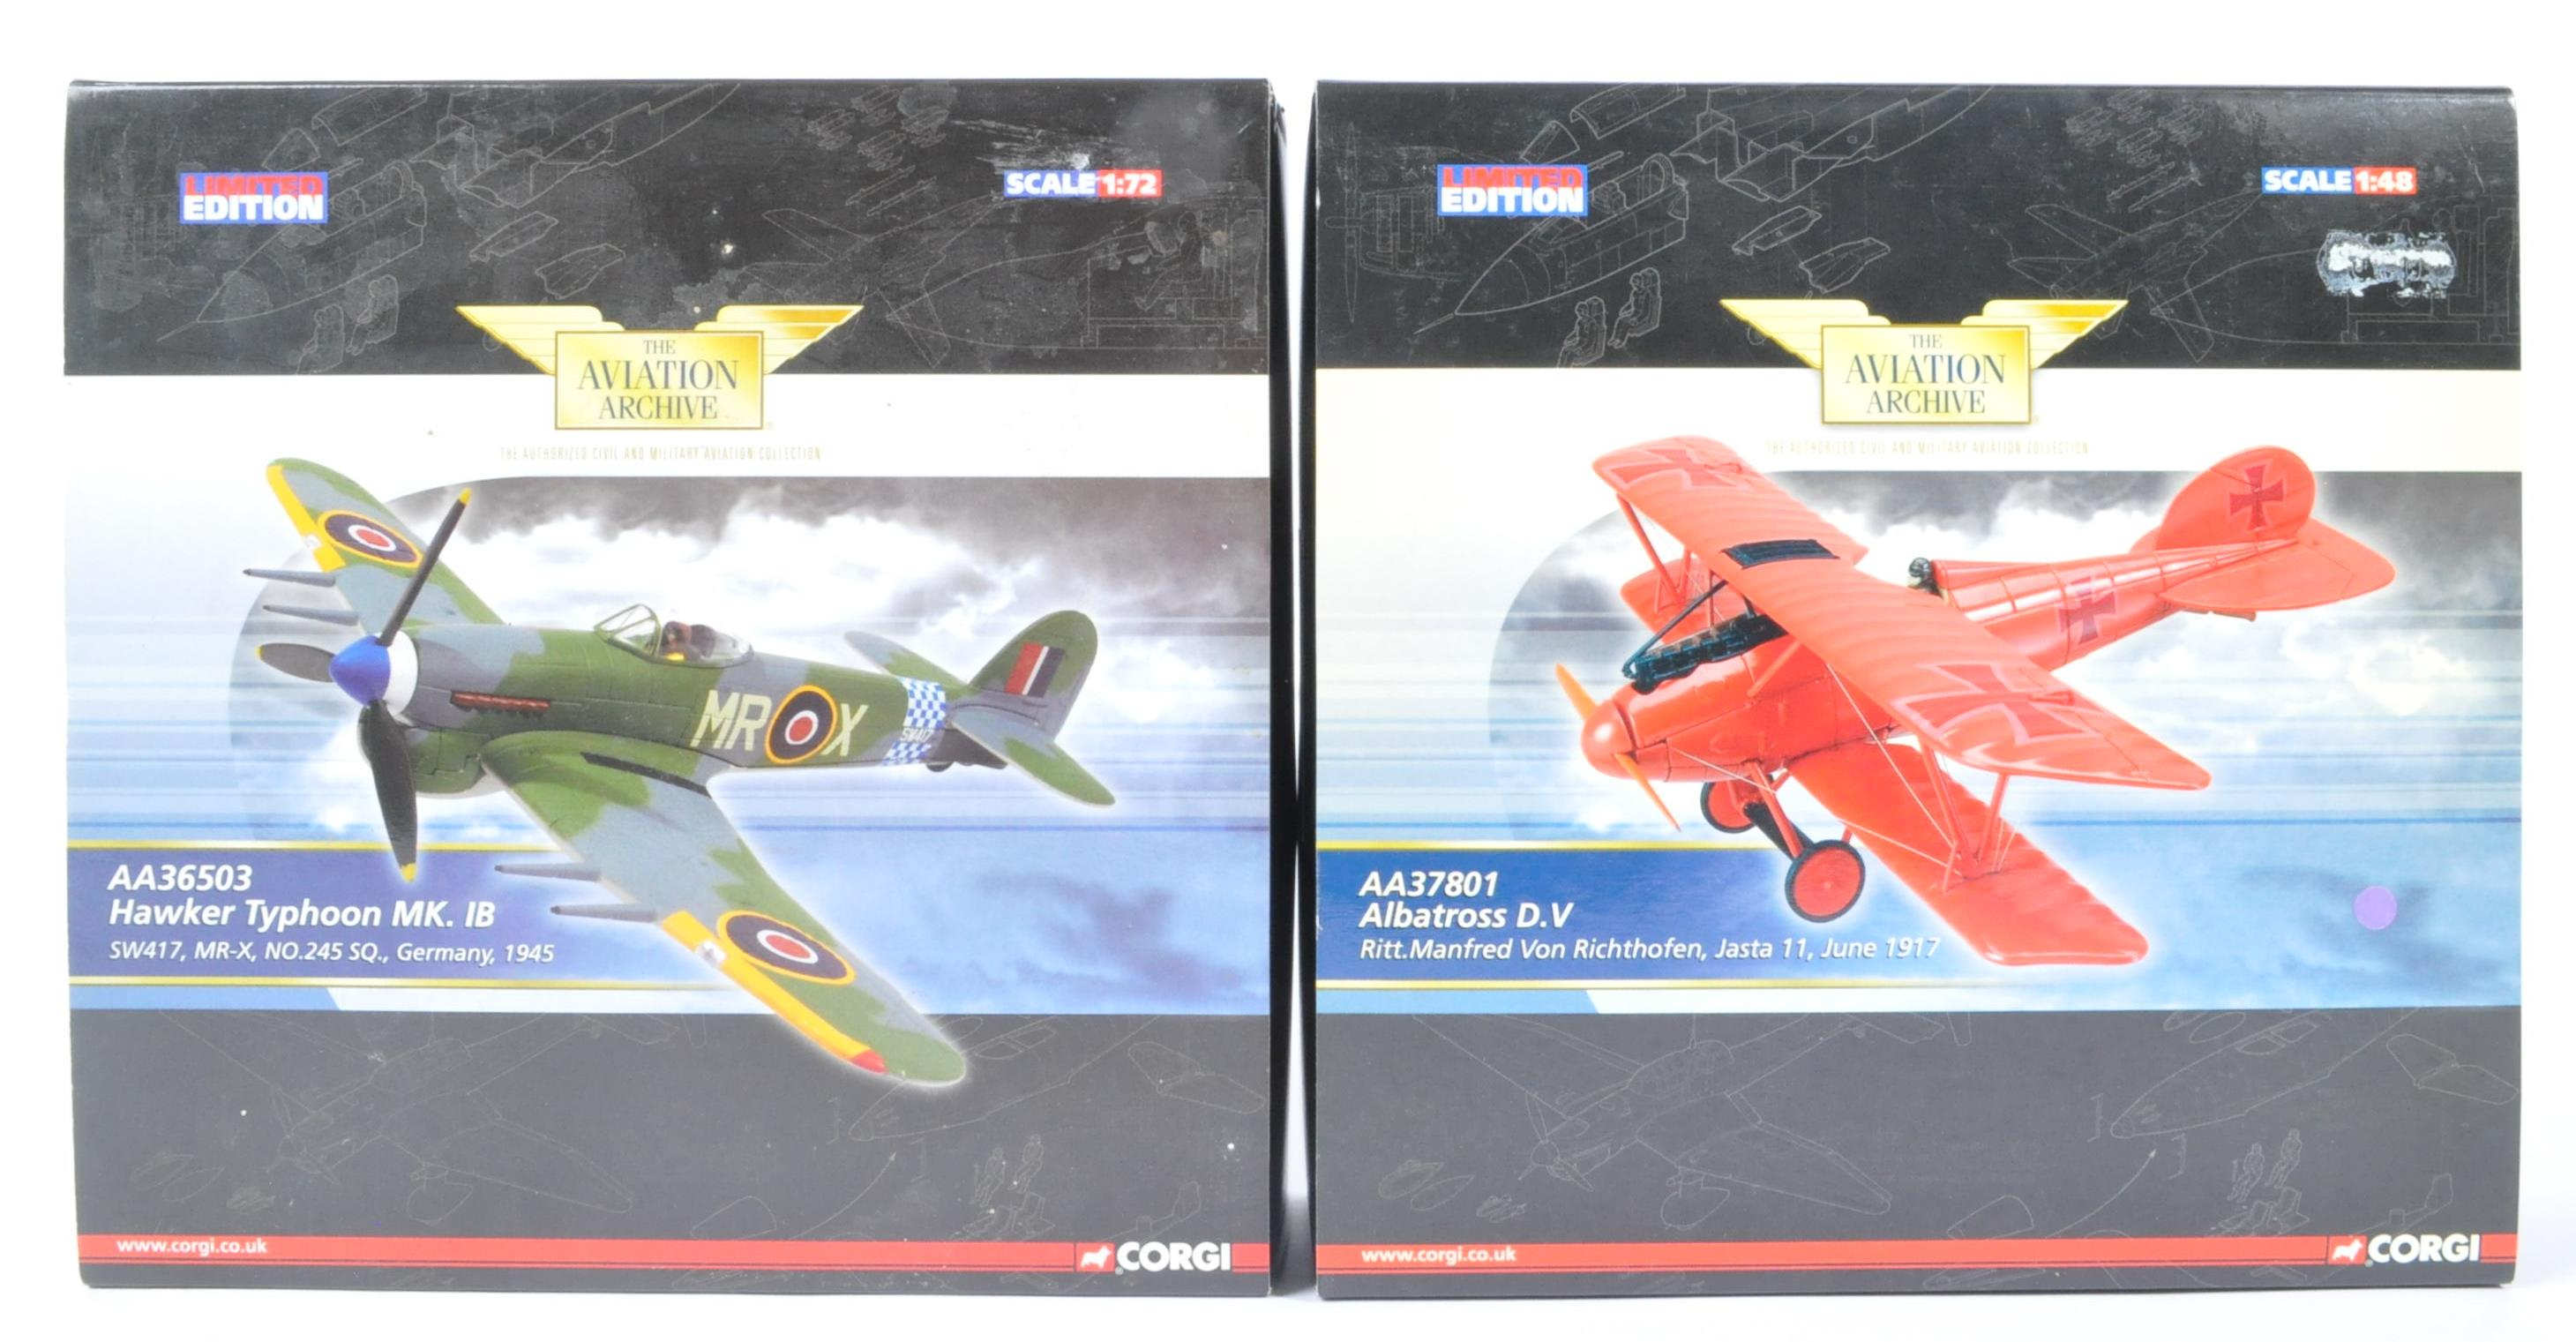 CORGI AVIATION ARCHIVE - TWO BOXED LIMITED EDITION DIECAST MODELS